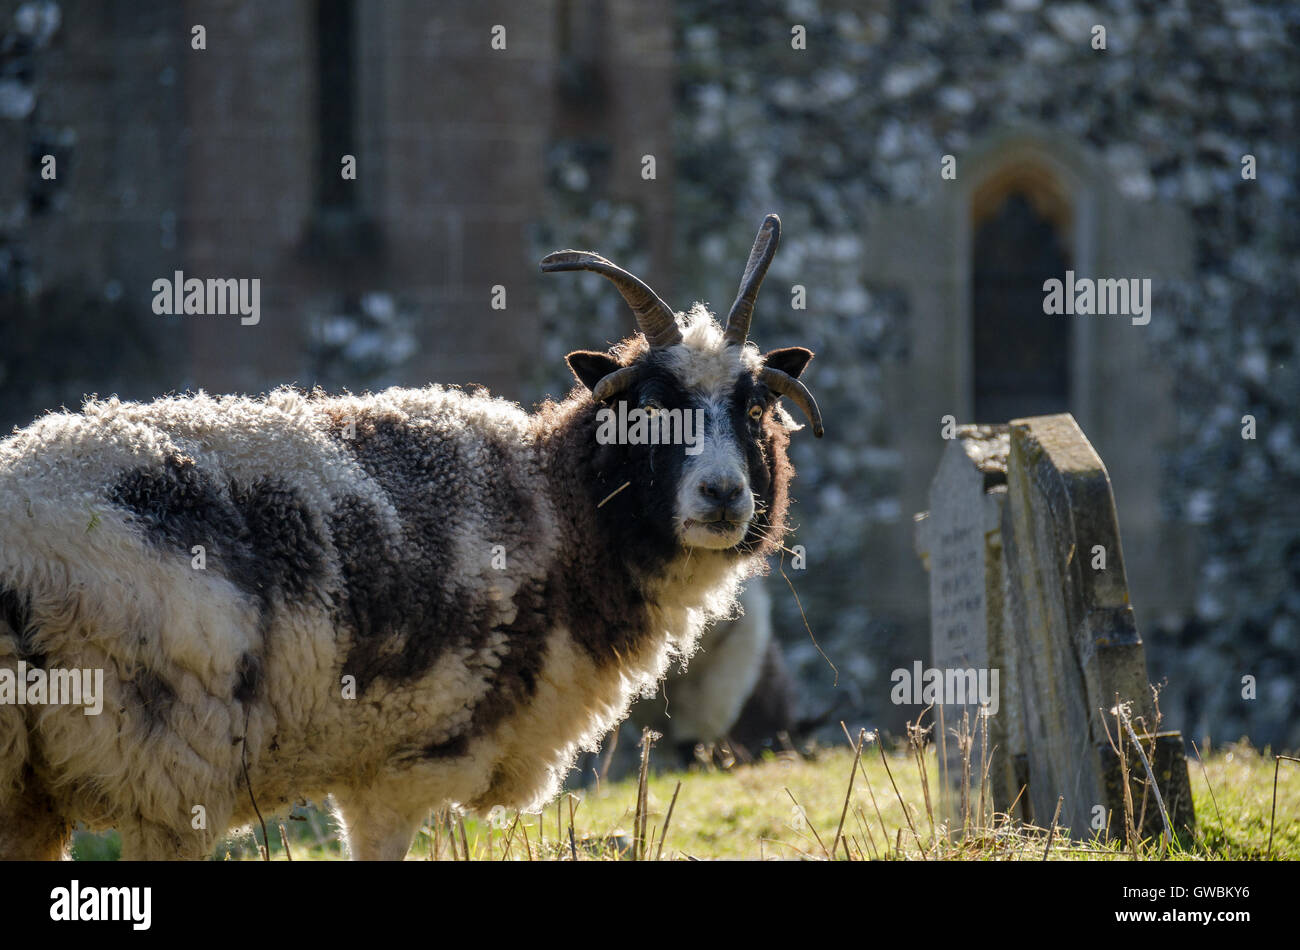 Goat Roaming In An Old Graveyard - Stock Image